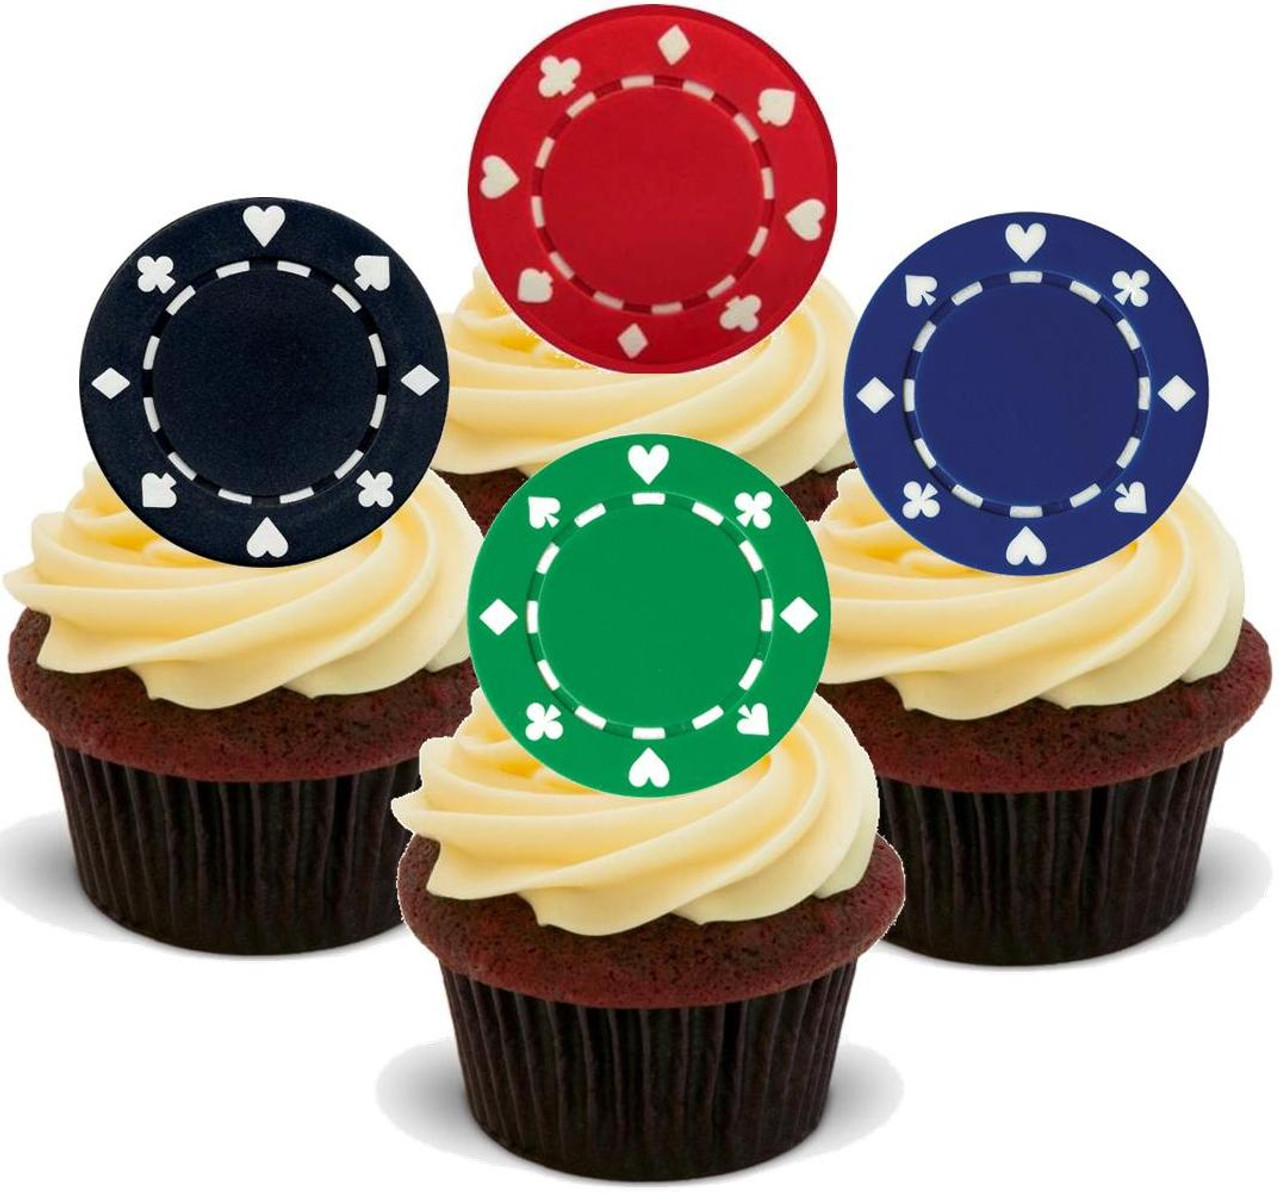 Personalised Edible Poker Cake Topper Icing or Wafer Paper